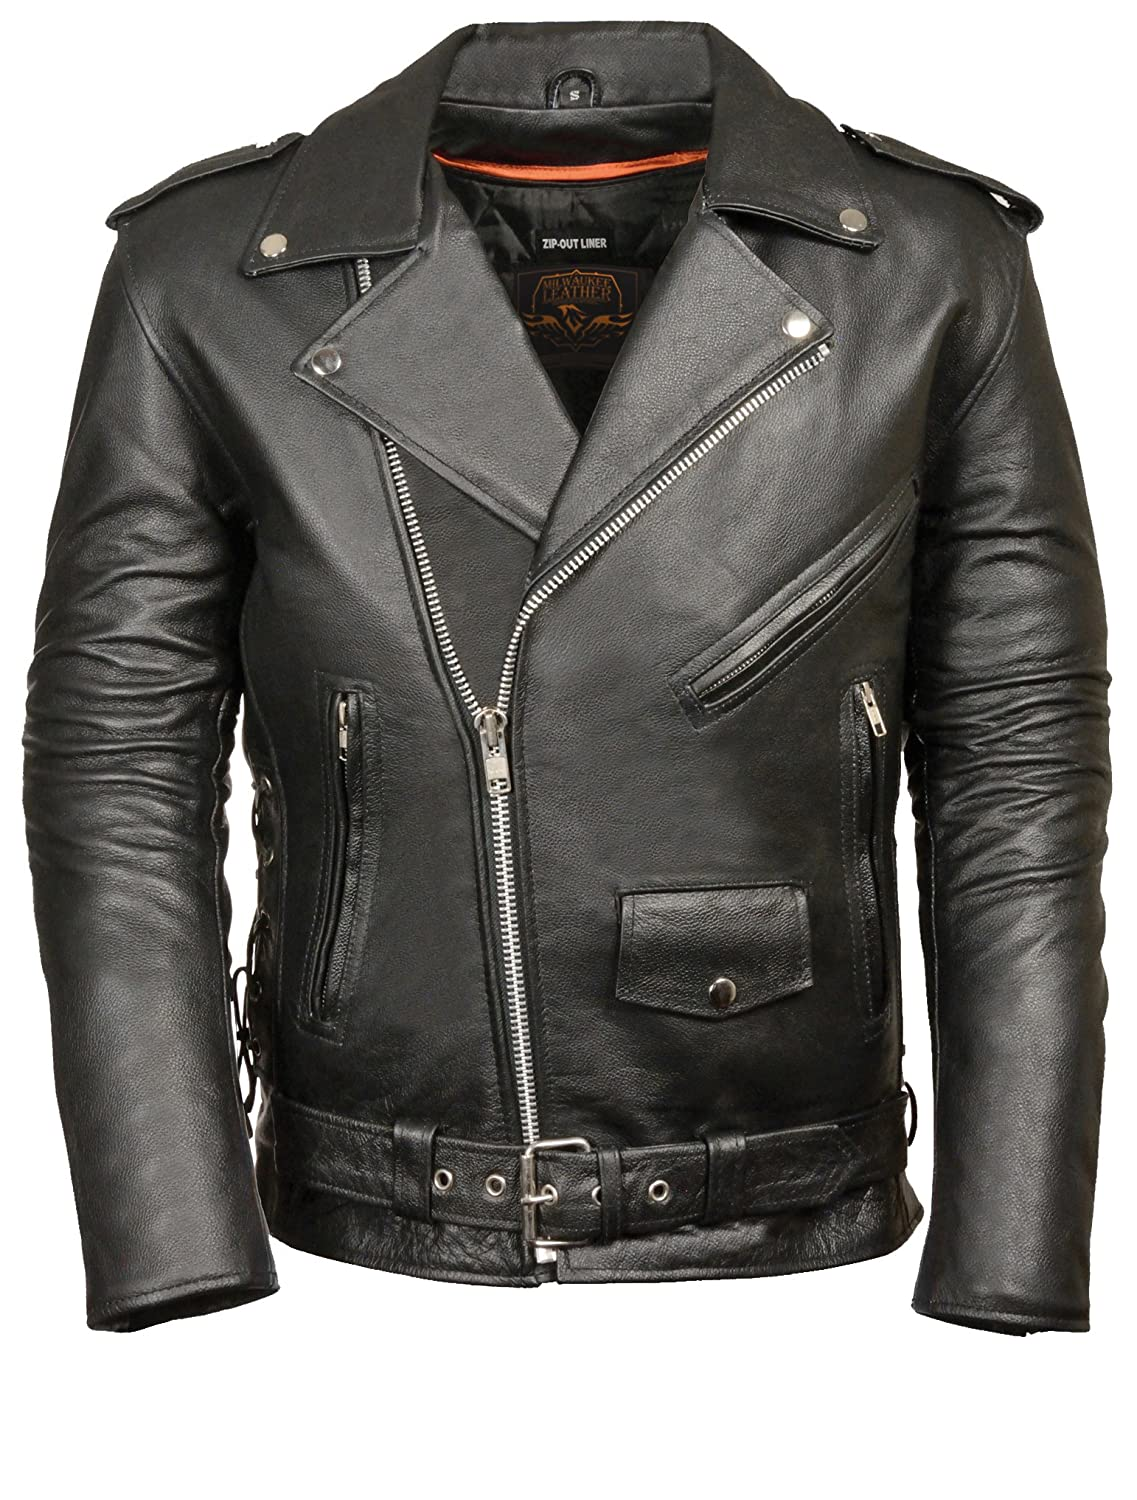 MILWAUKEE LEATHER Men's Classic Side Lace Police Style Motorcycle Jacket (Black, X-Small) SH1011-XS-BLACK